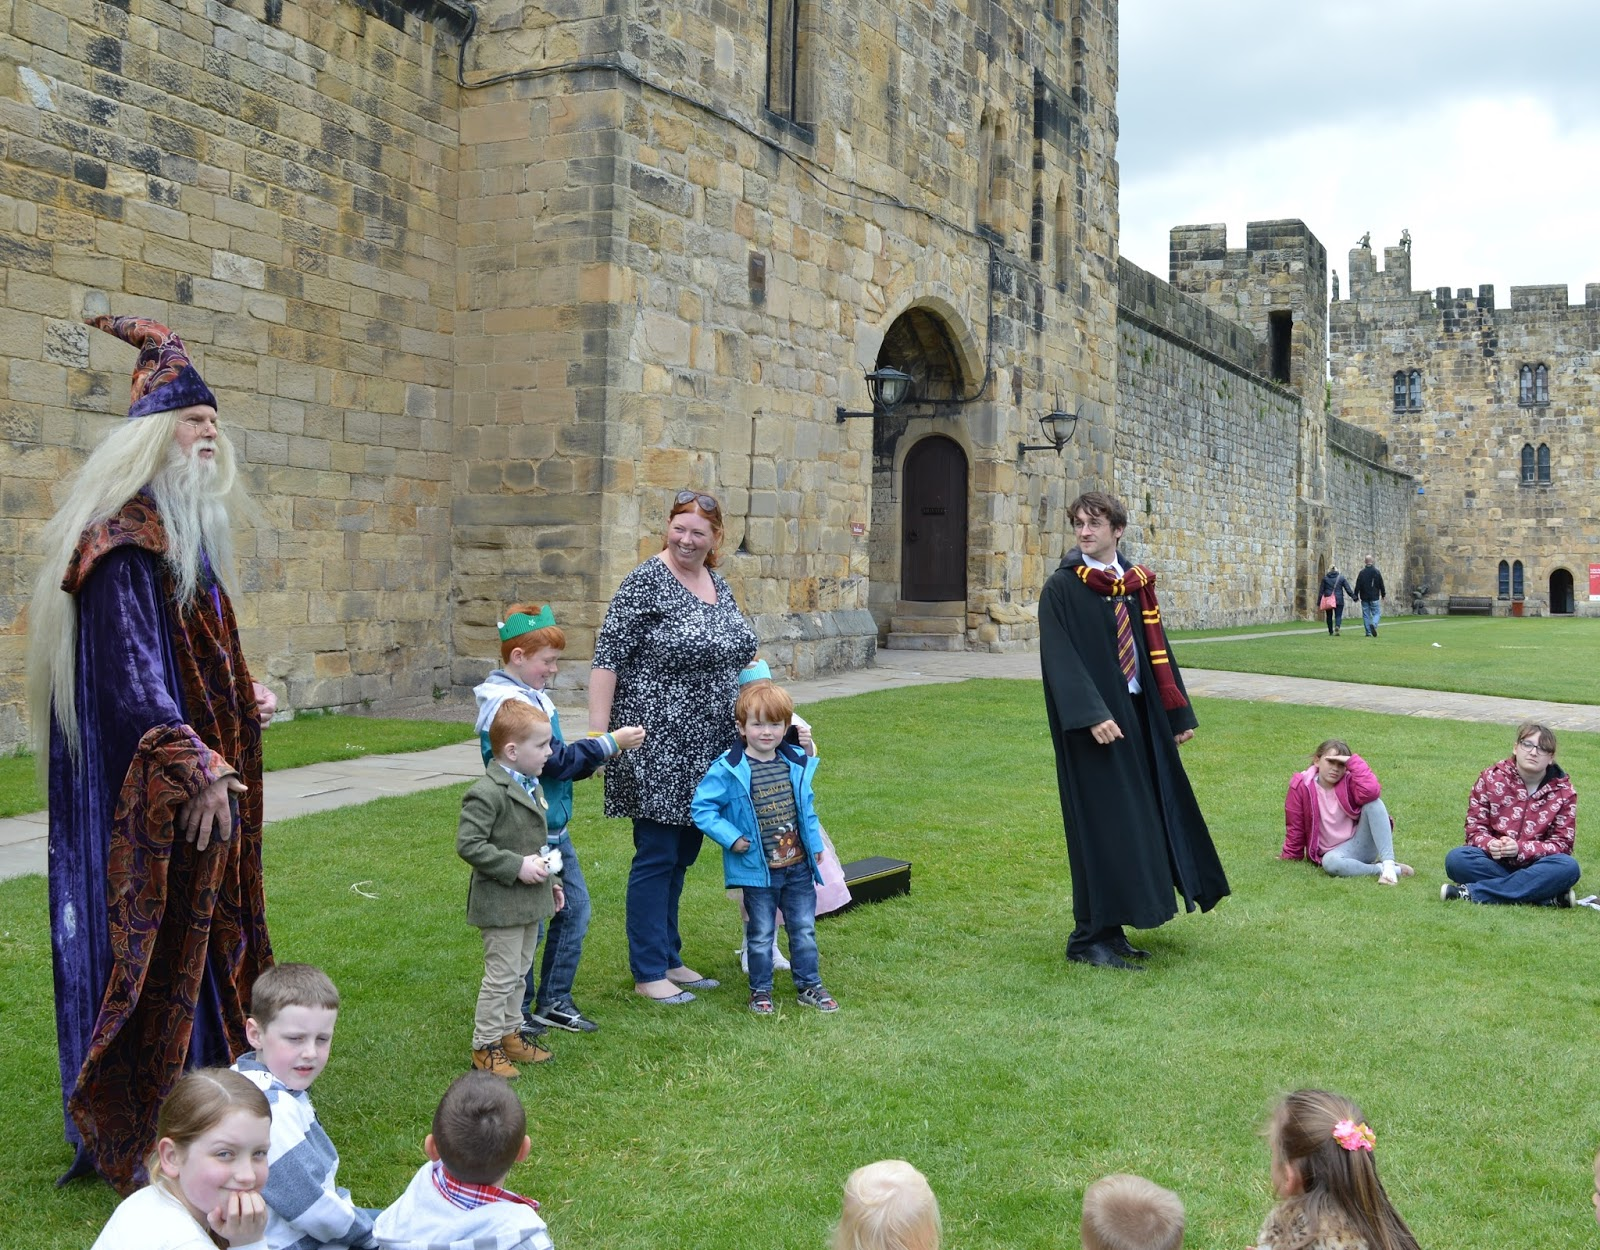 Harry Potter and Dumbledore magic show at Alnwick Castle